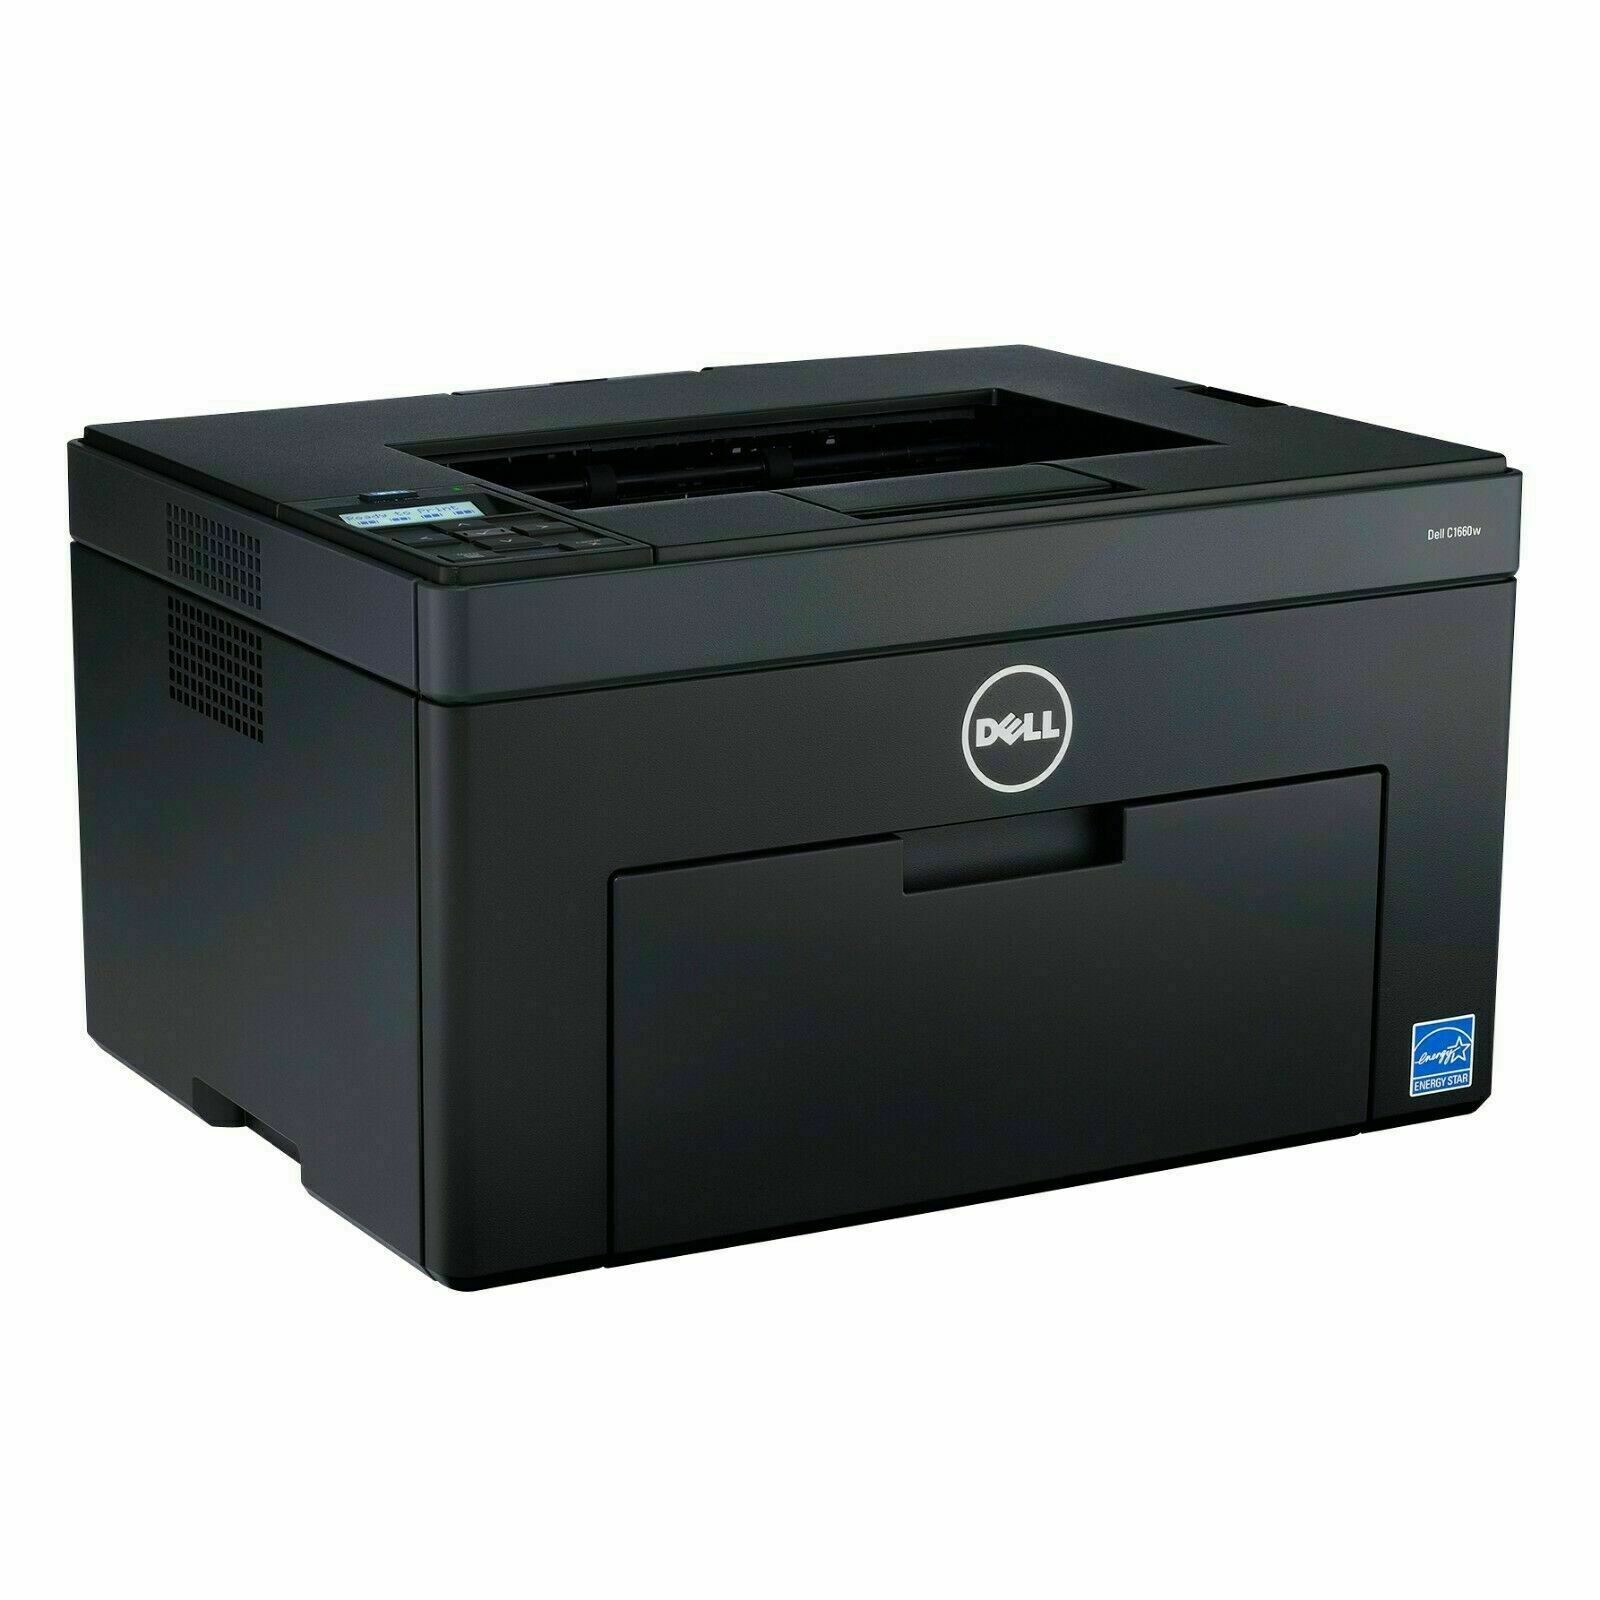 DELL C1660W Wireless Color Laser printer  90 Day Warranty W/